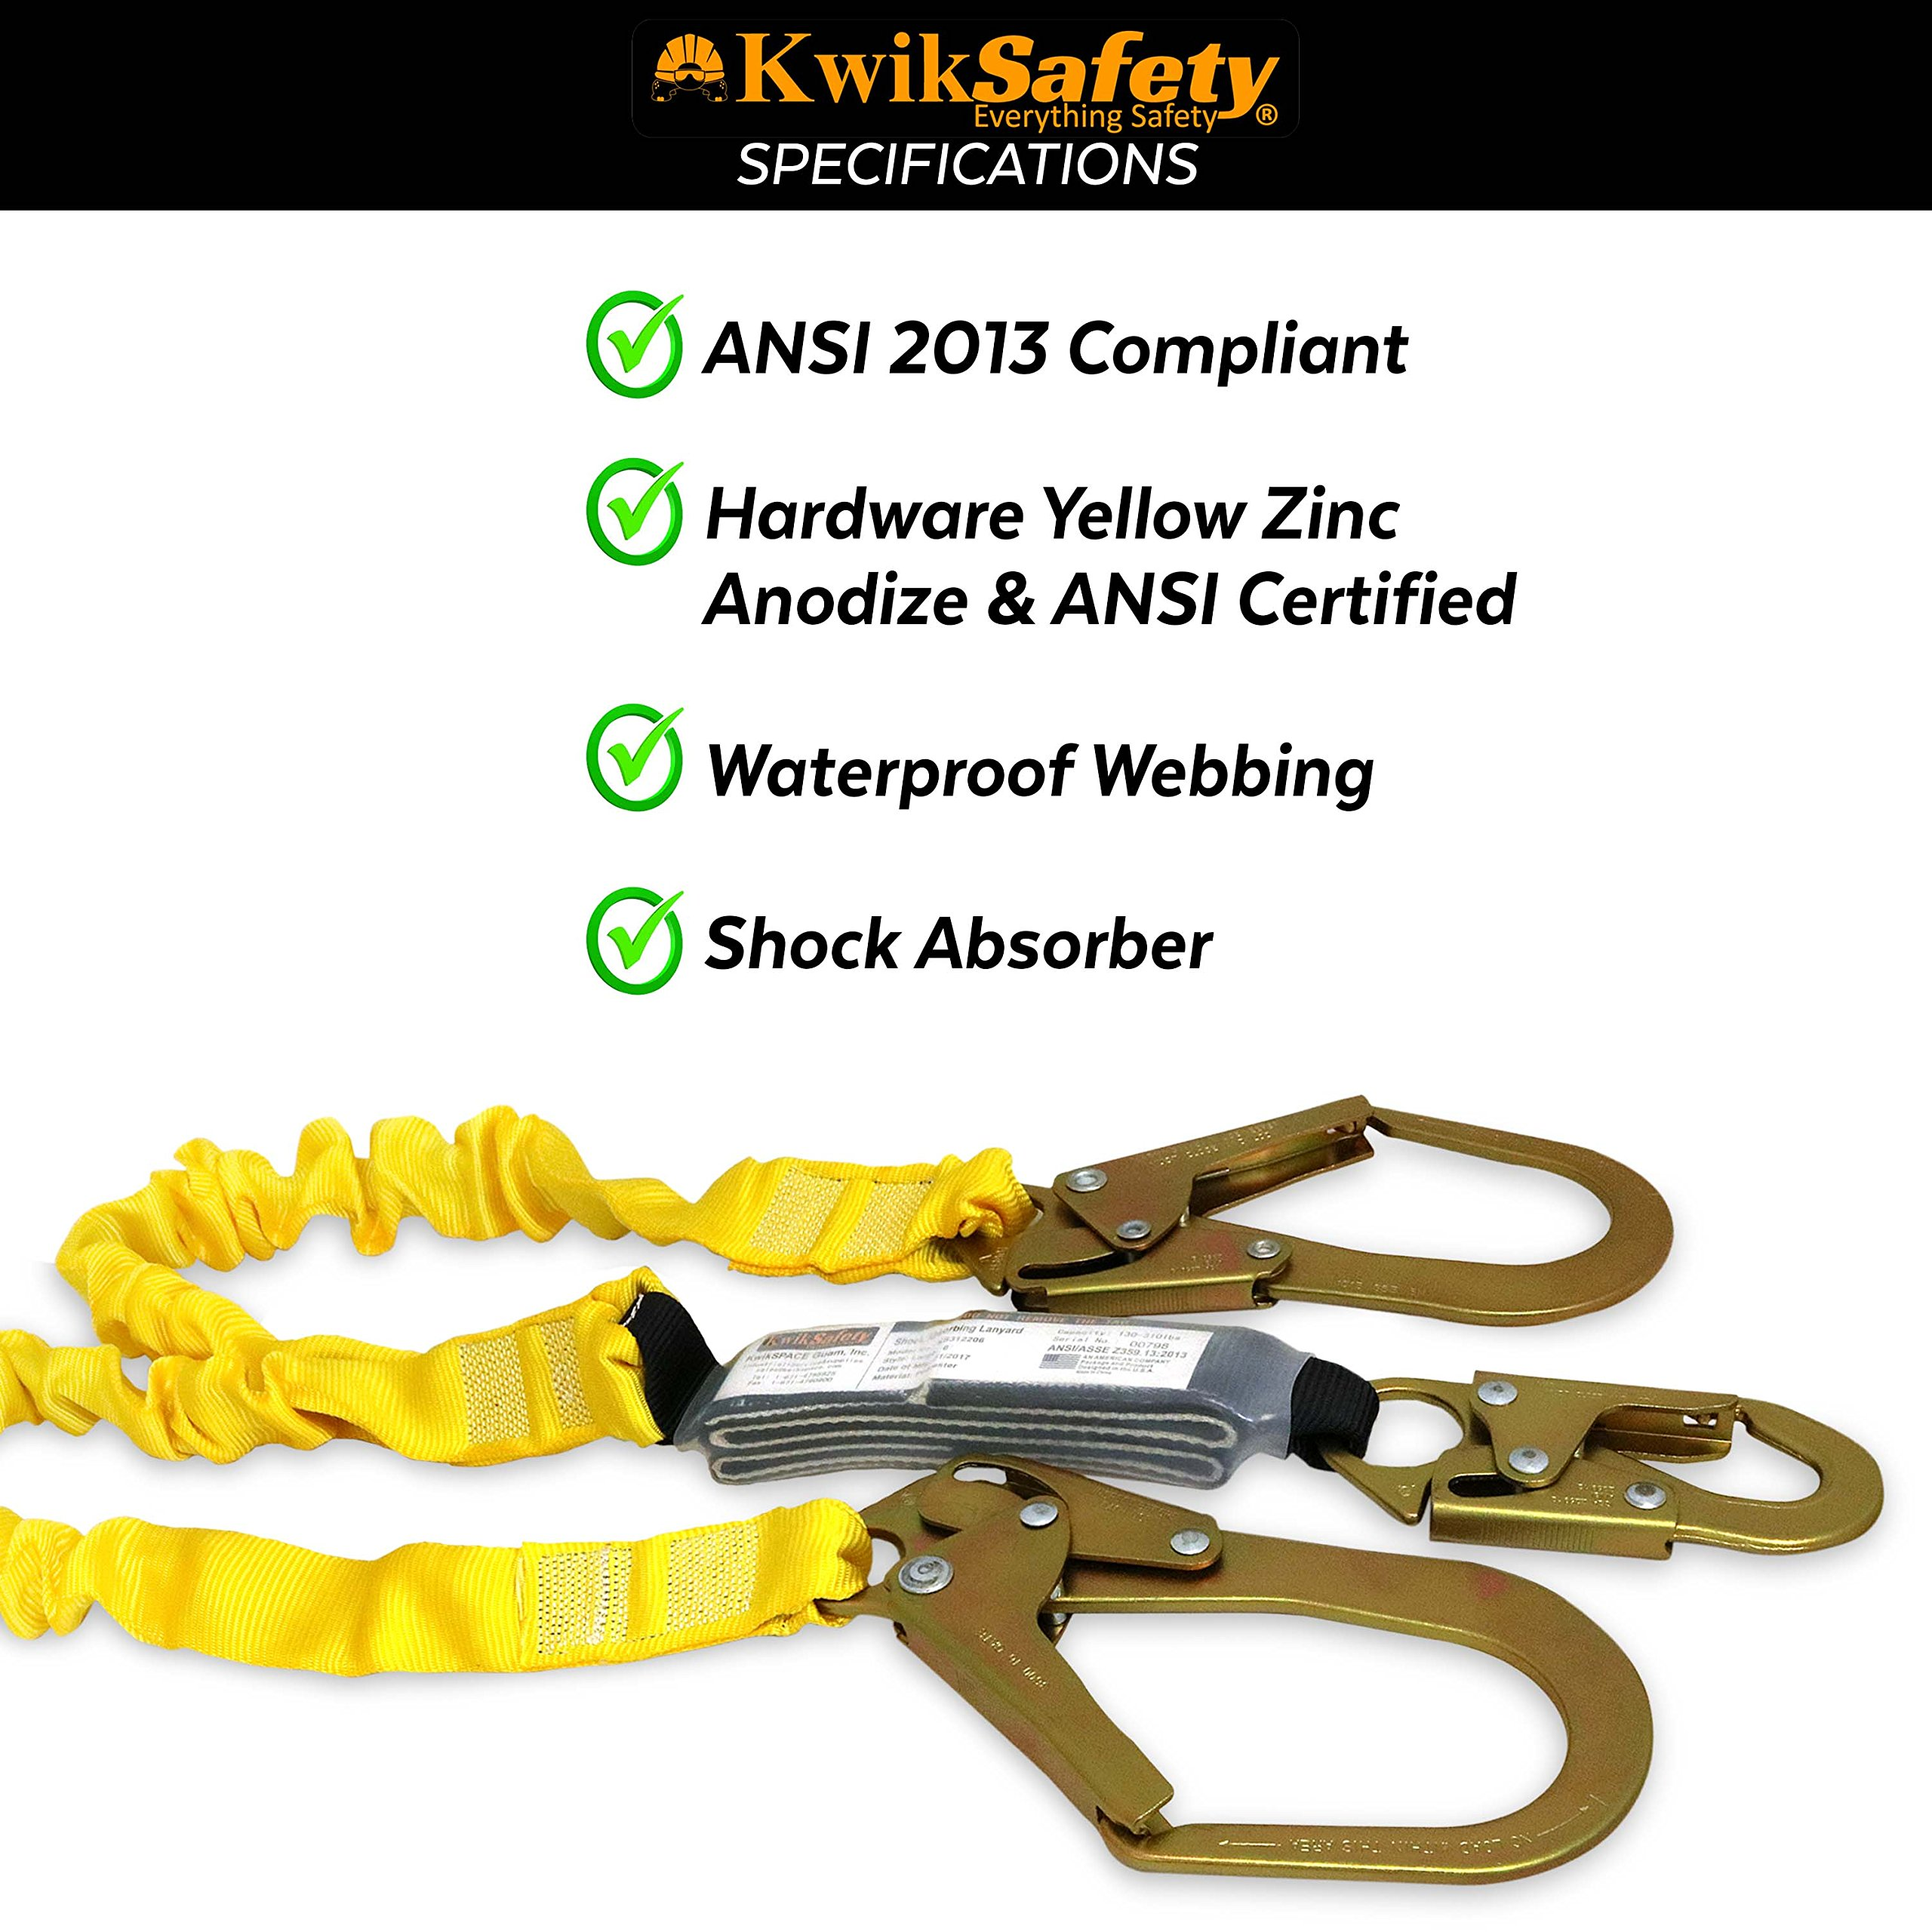 KwikSafety (Charlotte, NC) PYTHON (COMBO) Double Leg 6ft Tubular Stretch Safety Lanyard | OSHA ANSI Fall Protection EXTERNAL Shock Absorber | Construction Arborist Roofing | Snap Rebar Hook Connector by KwikSafety (Image #5)